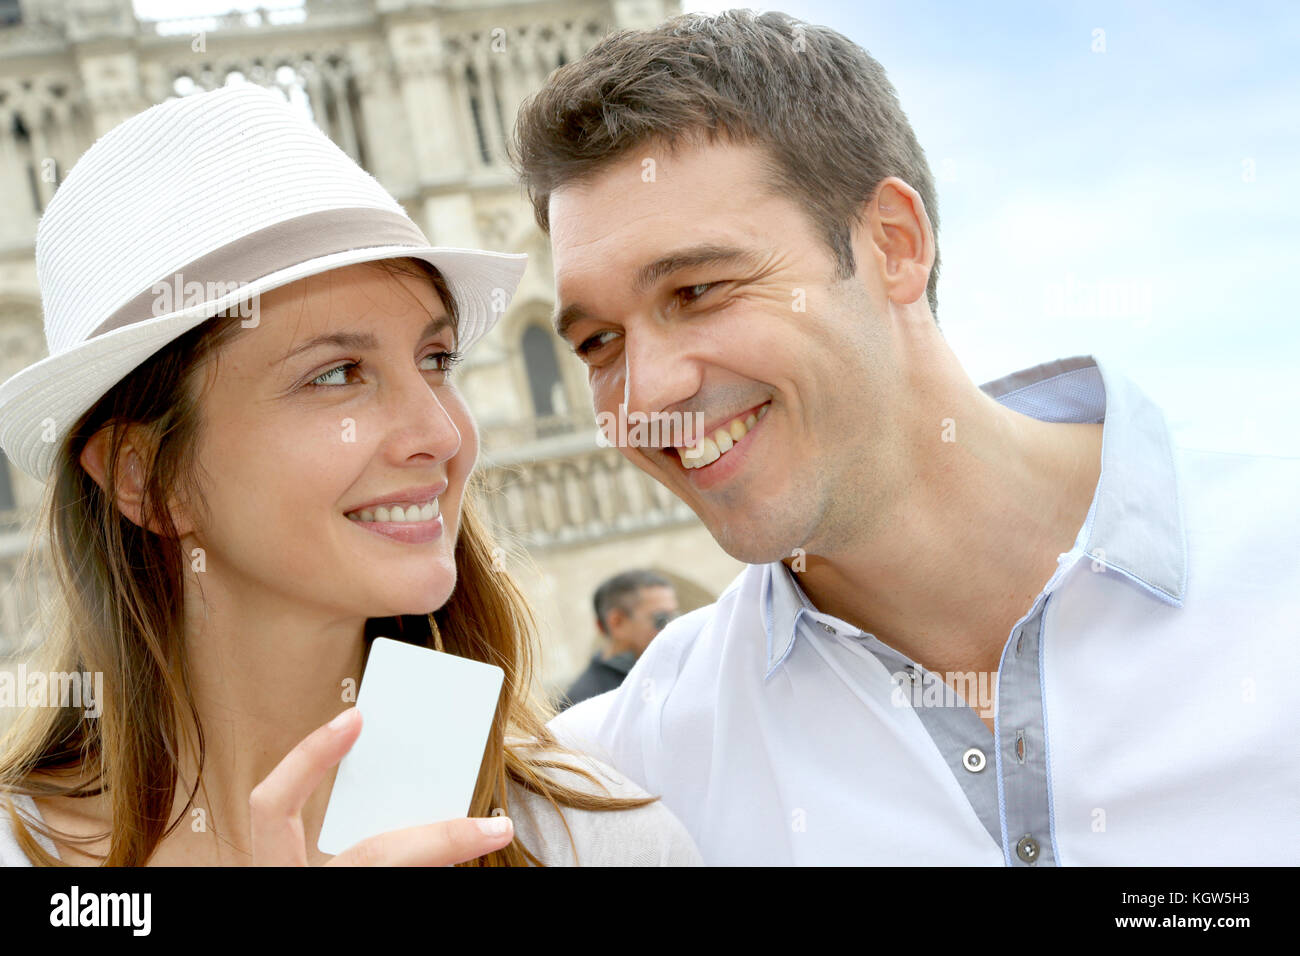 Couple showing tourist pass in front of Notre Dame - Stock Image